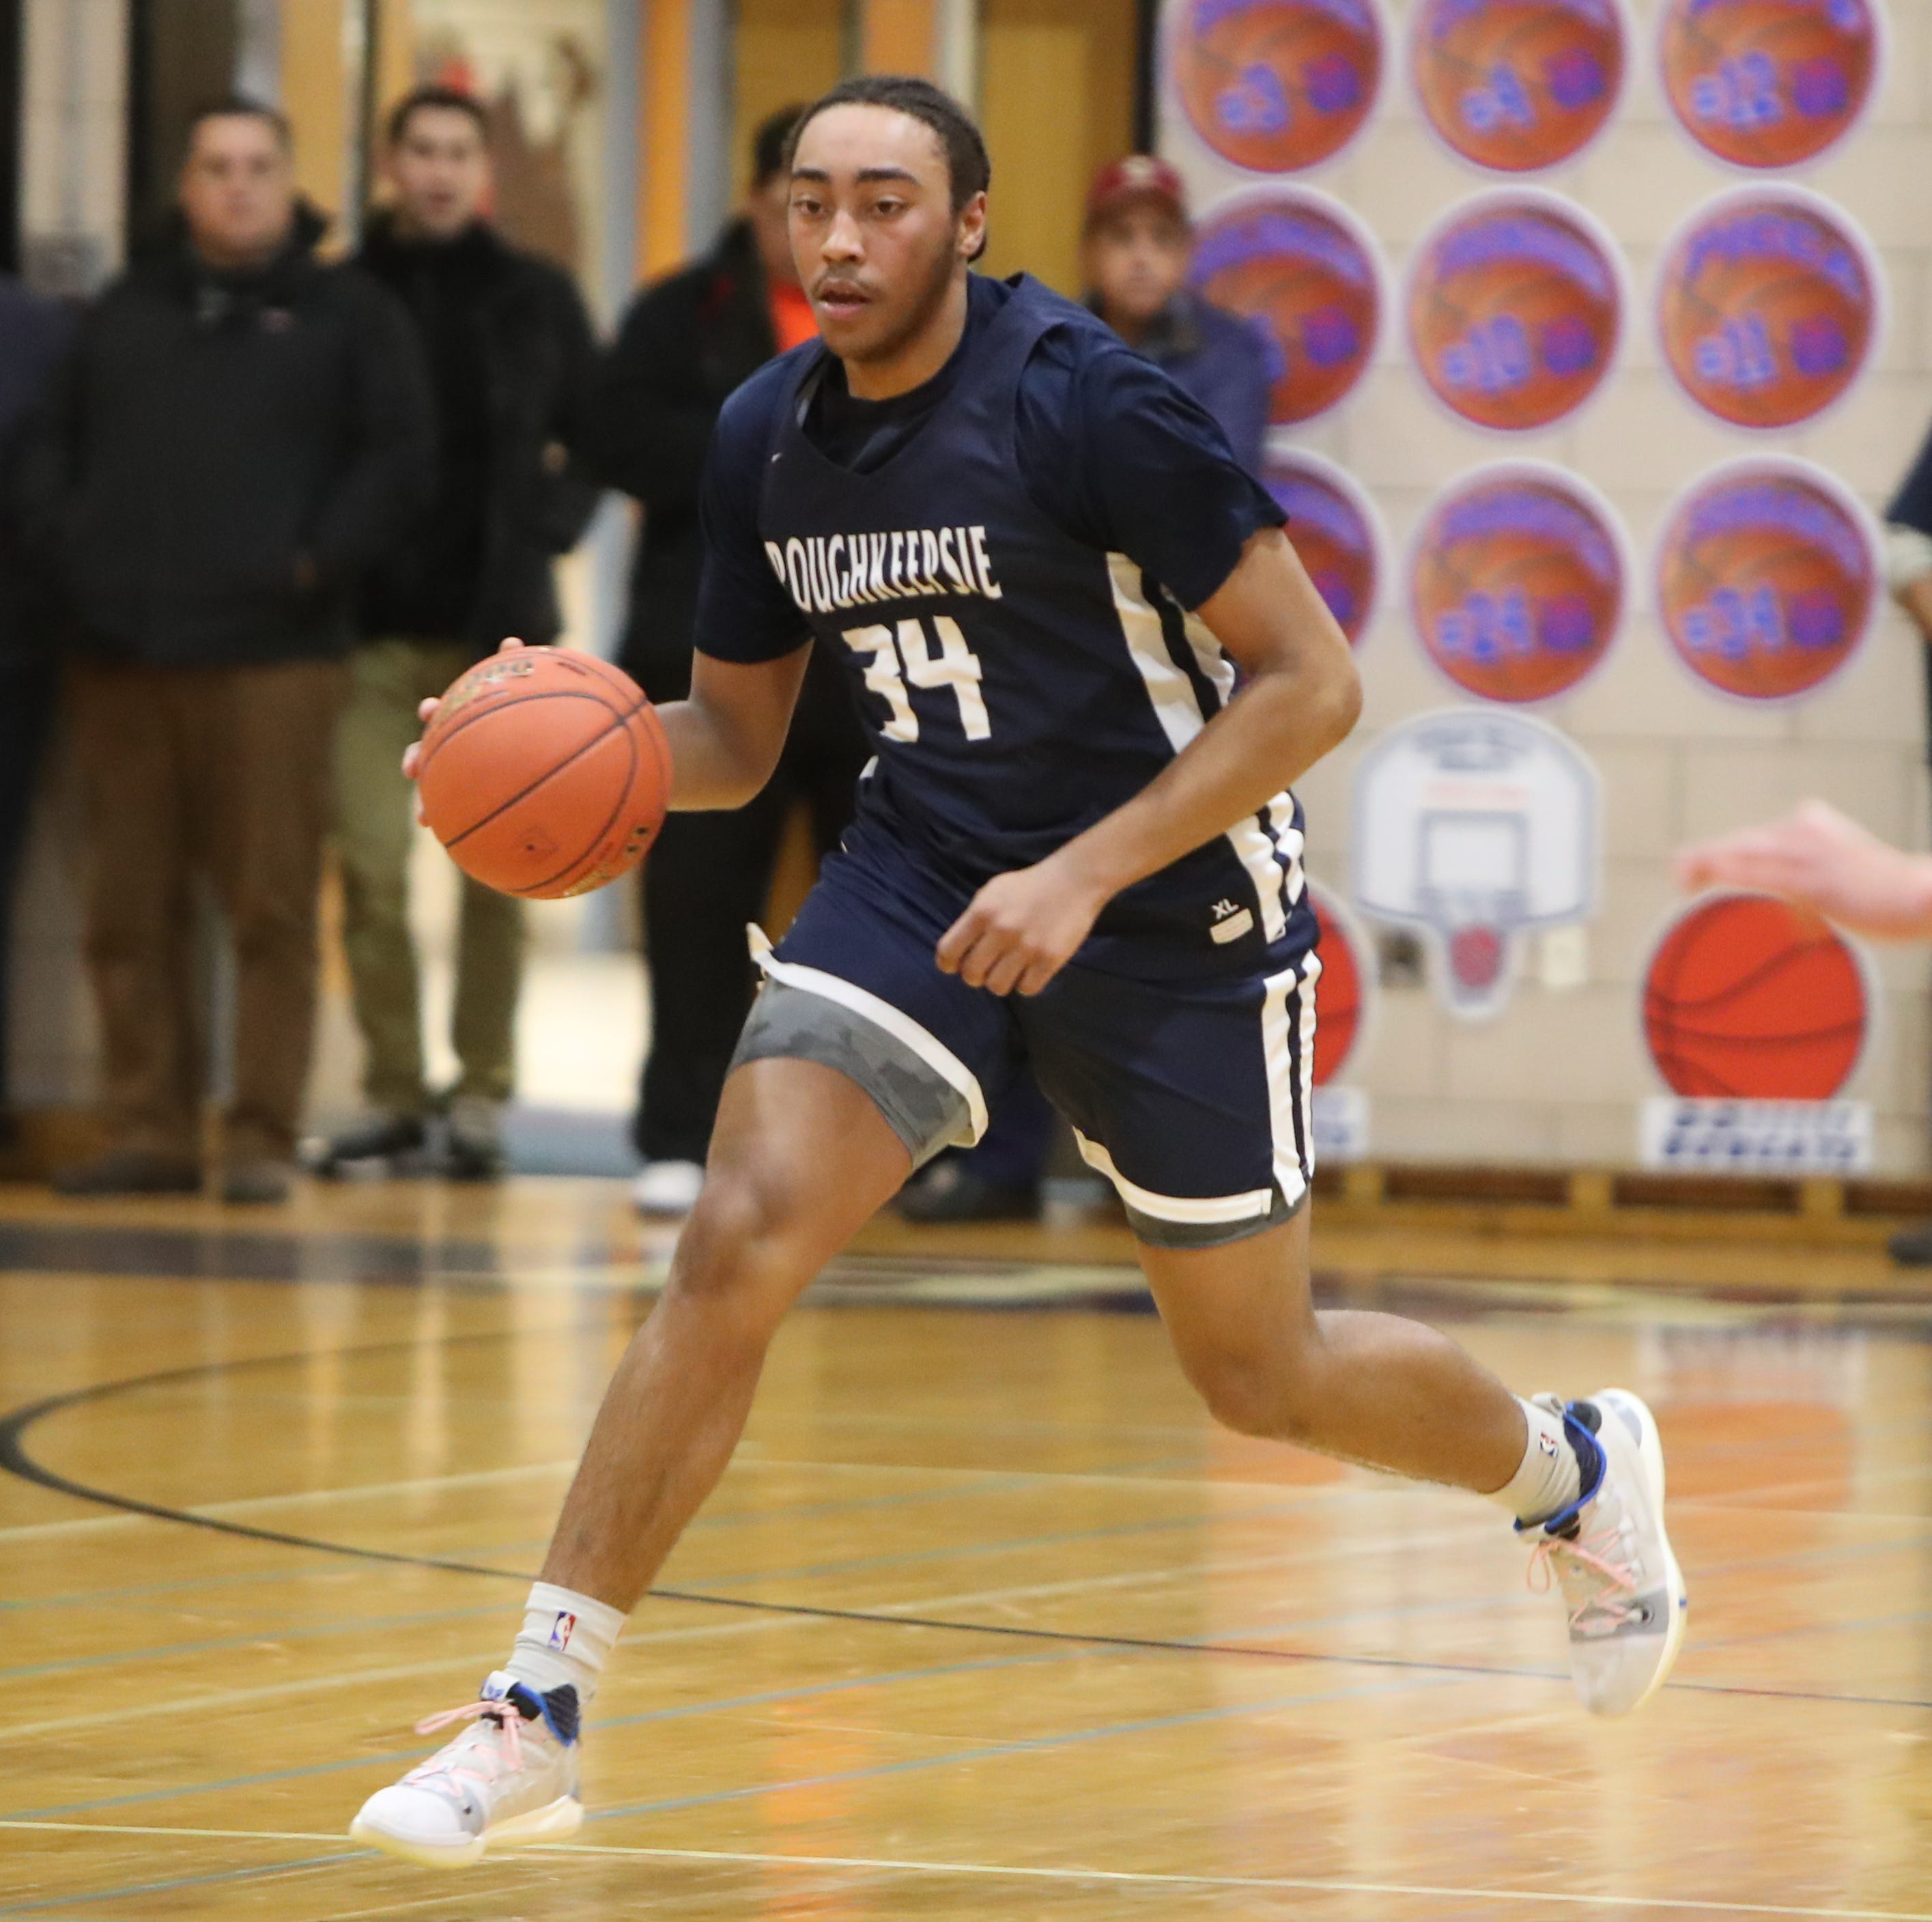 Poughkeepsie's Thomas named local basketball Player of the Year by coaches